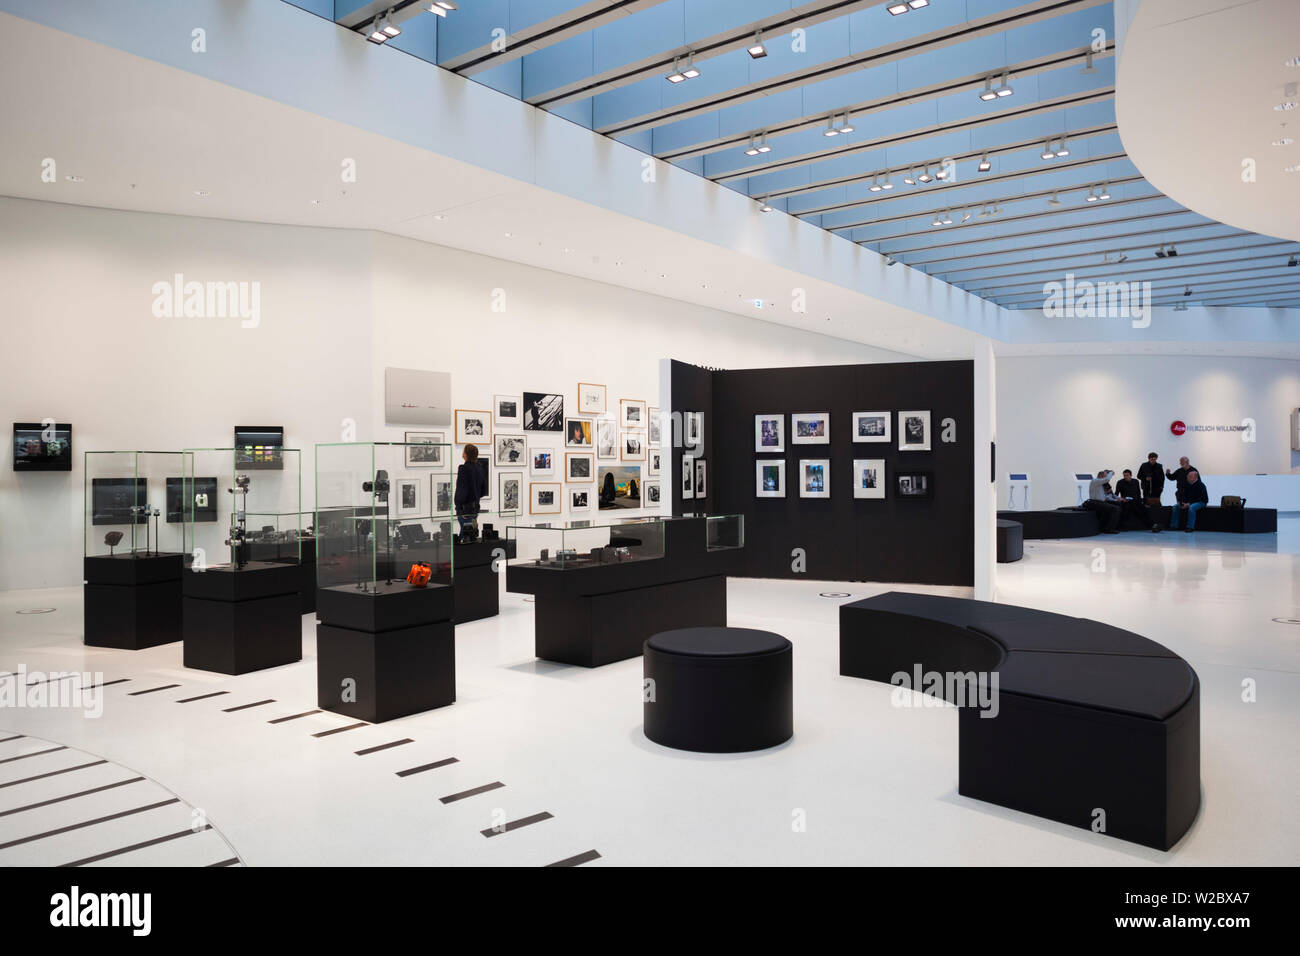 Germany, Hesse, Wetzlar, Headquarters of the Leica Camera Company, opened in 2014, interior galleries - Stock Image